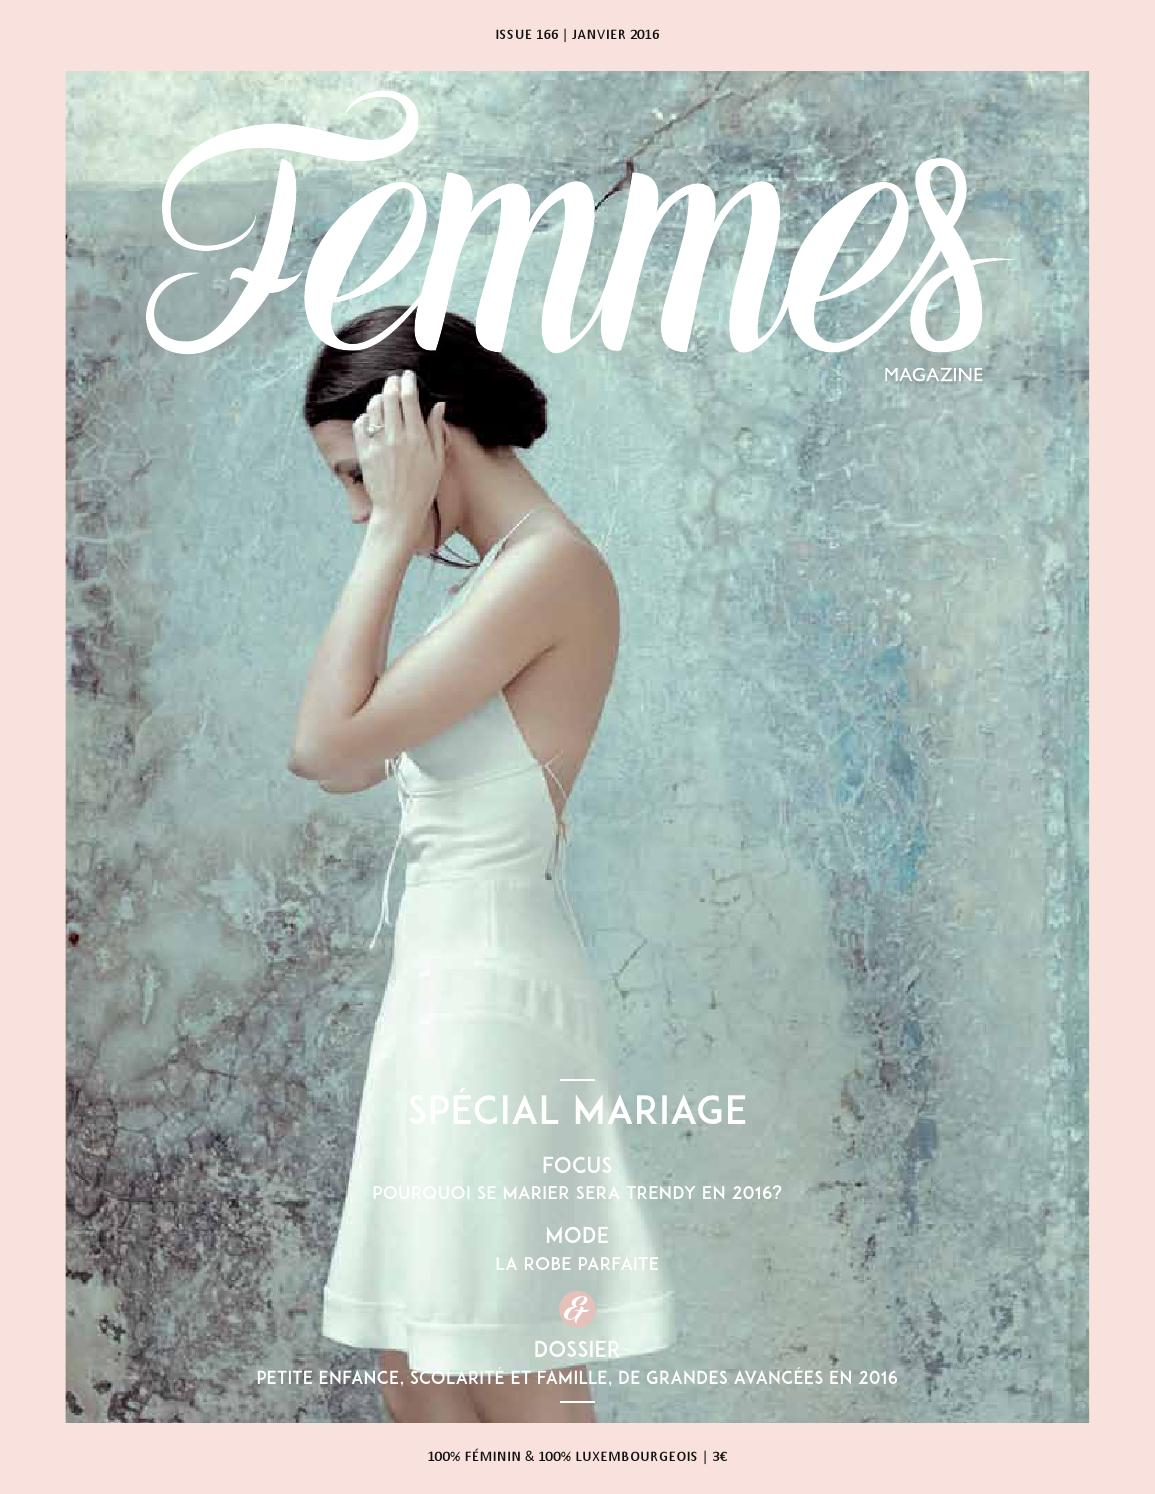 Femmes Magazine Luxembourg Janvier 2016- 166 by alinea communication - issuu 3d0fb6f62a0